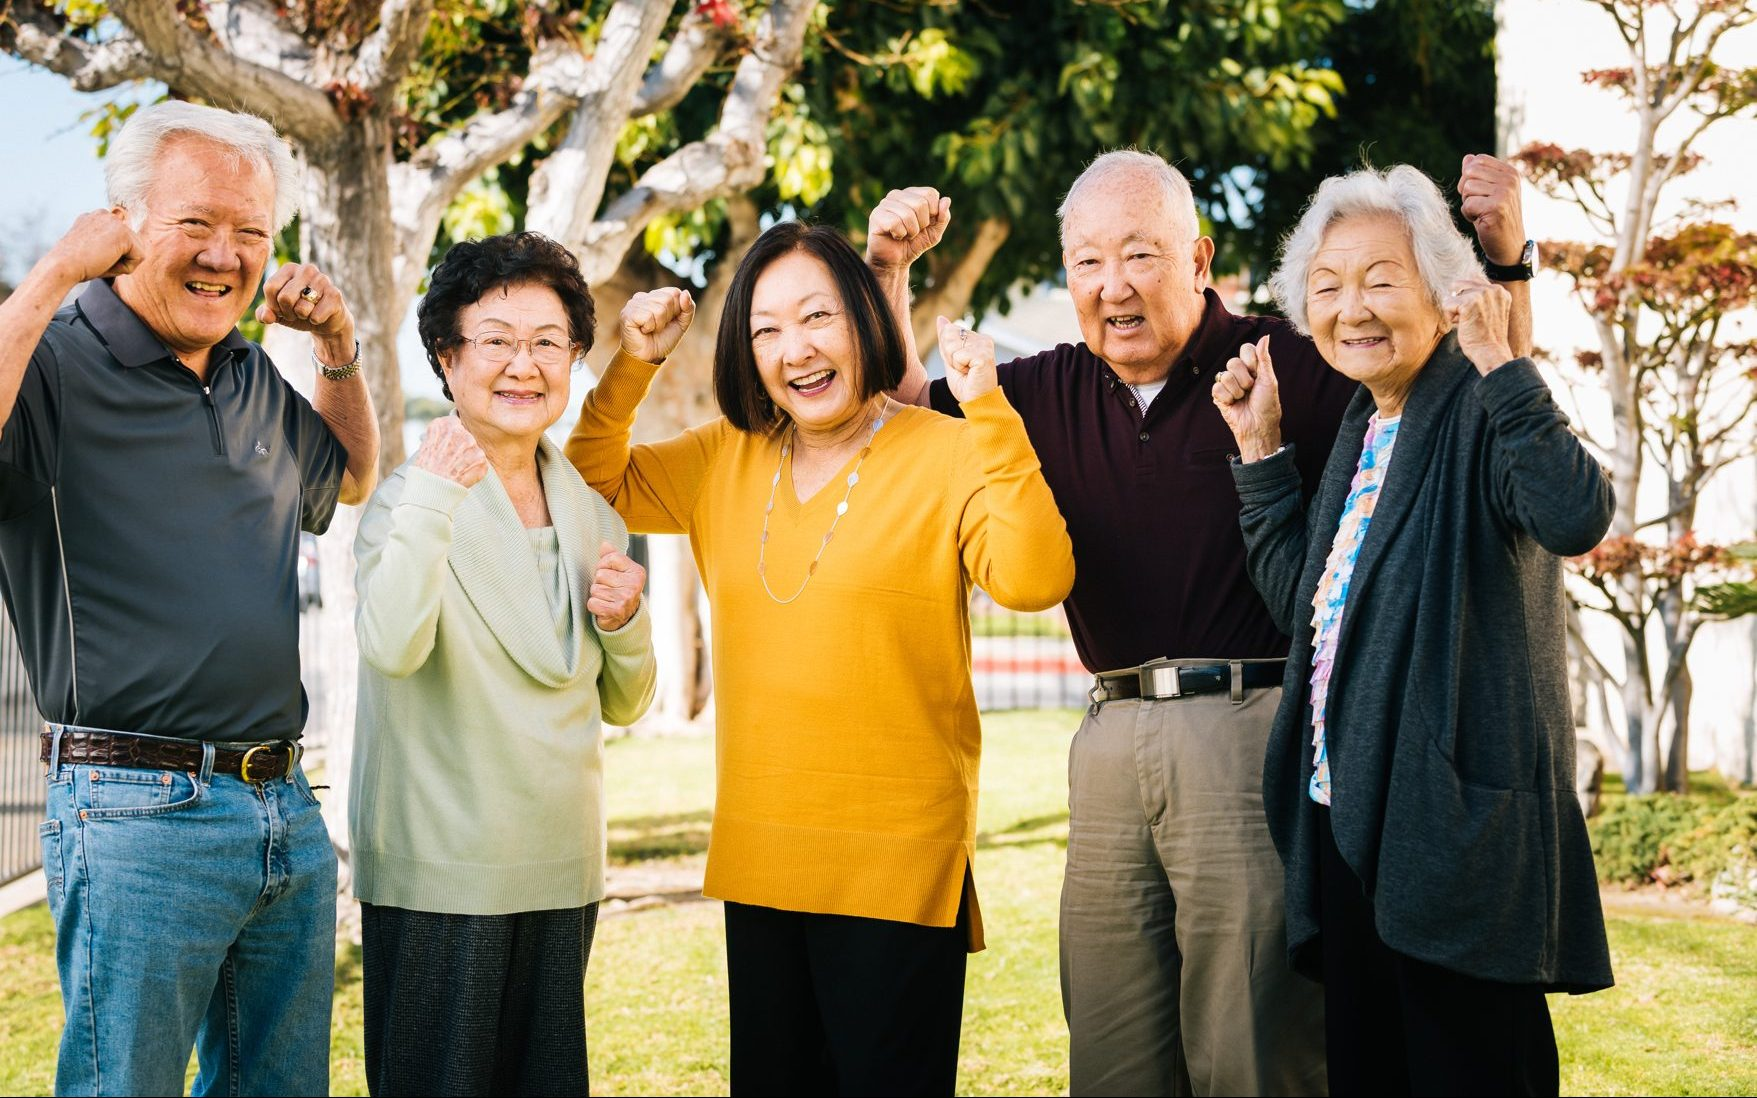 older adults looking into camera - empowerment